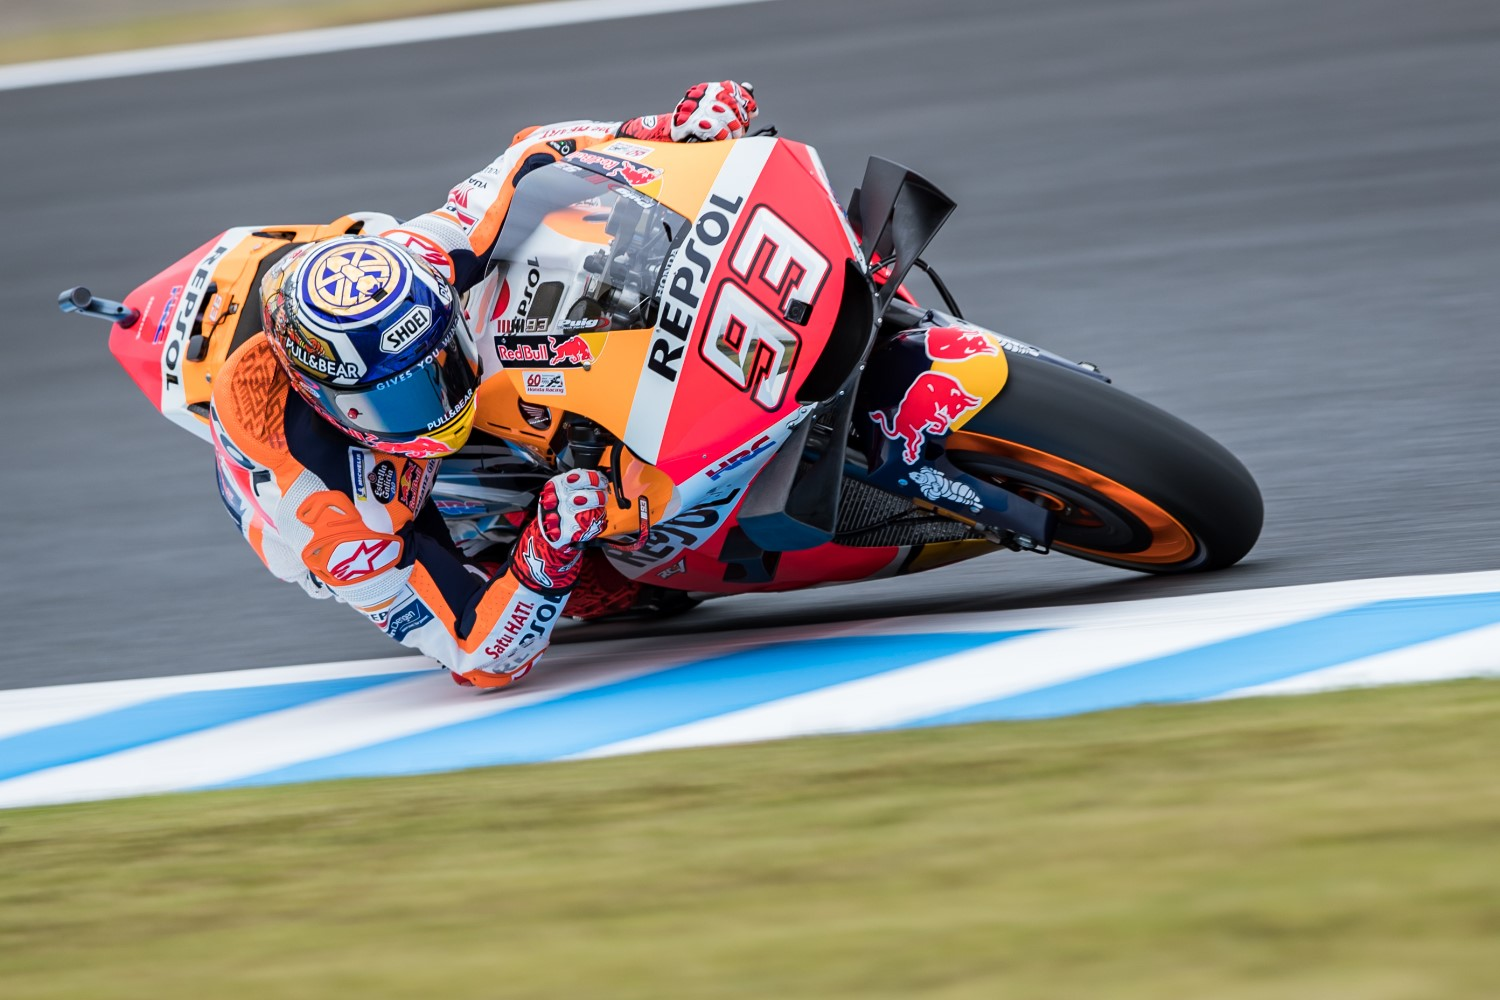 Marc Marquez charges to pole